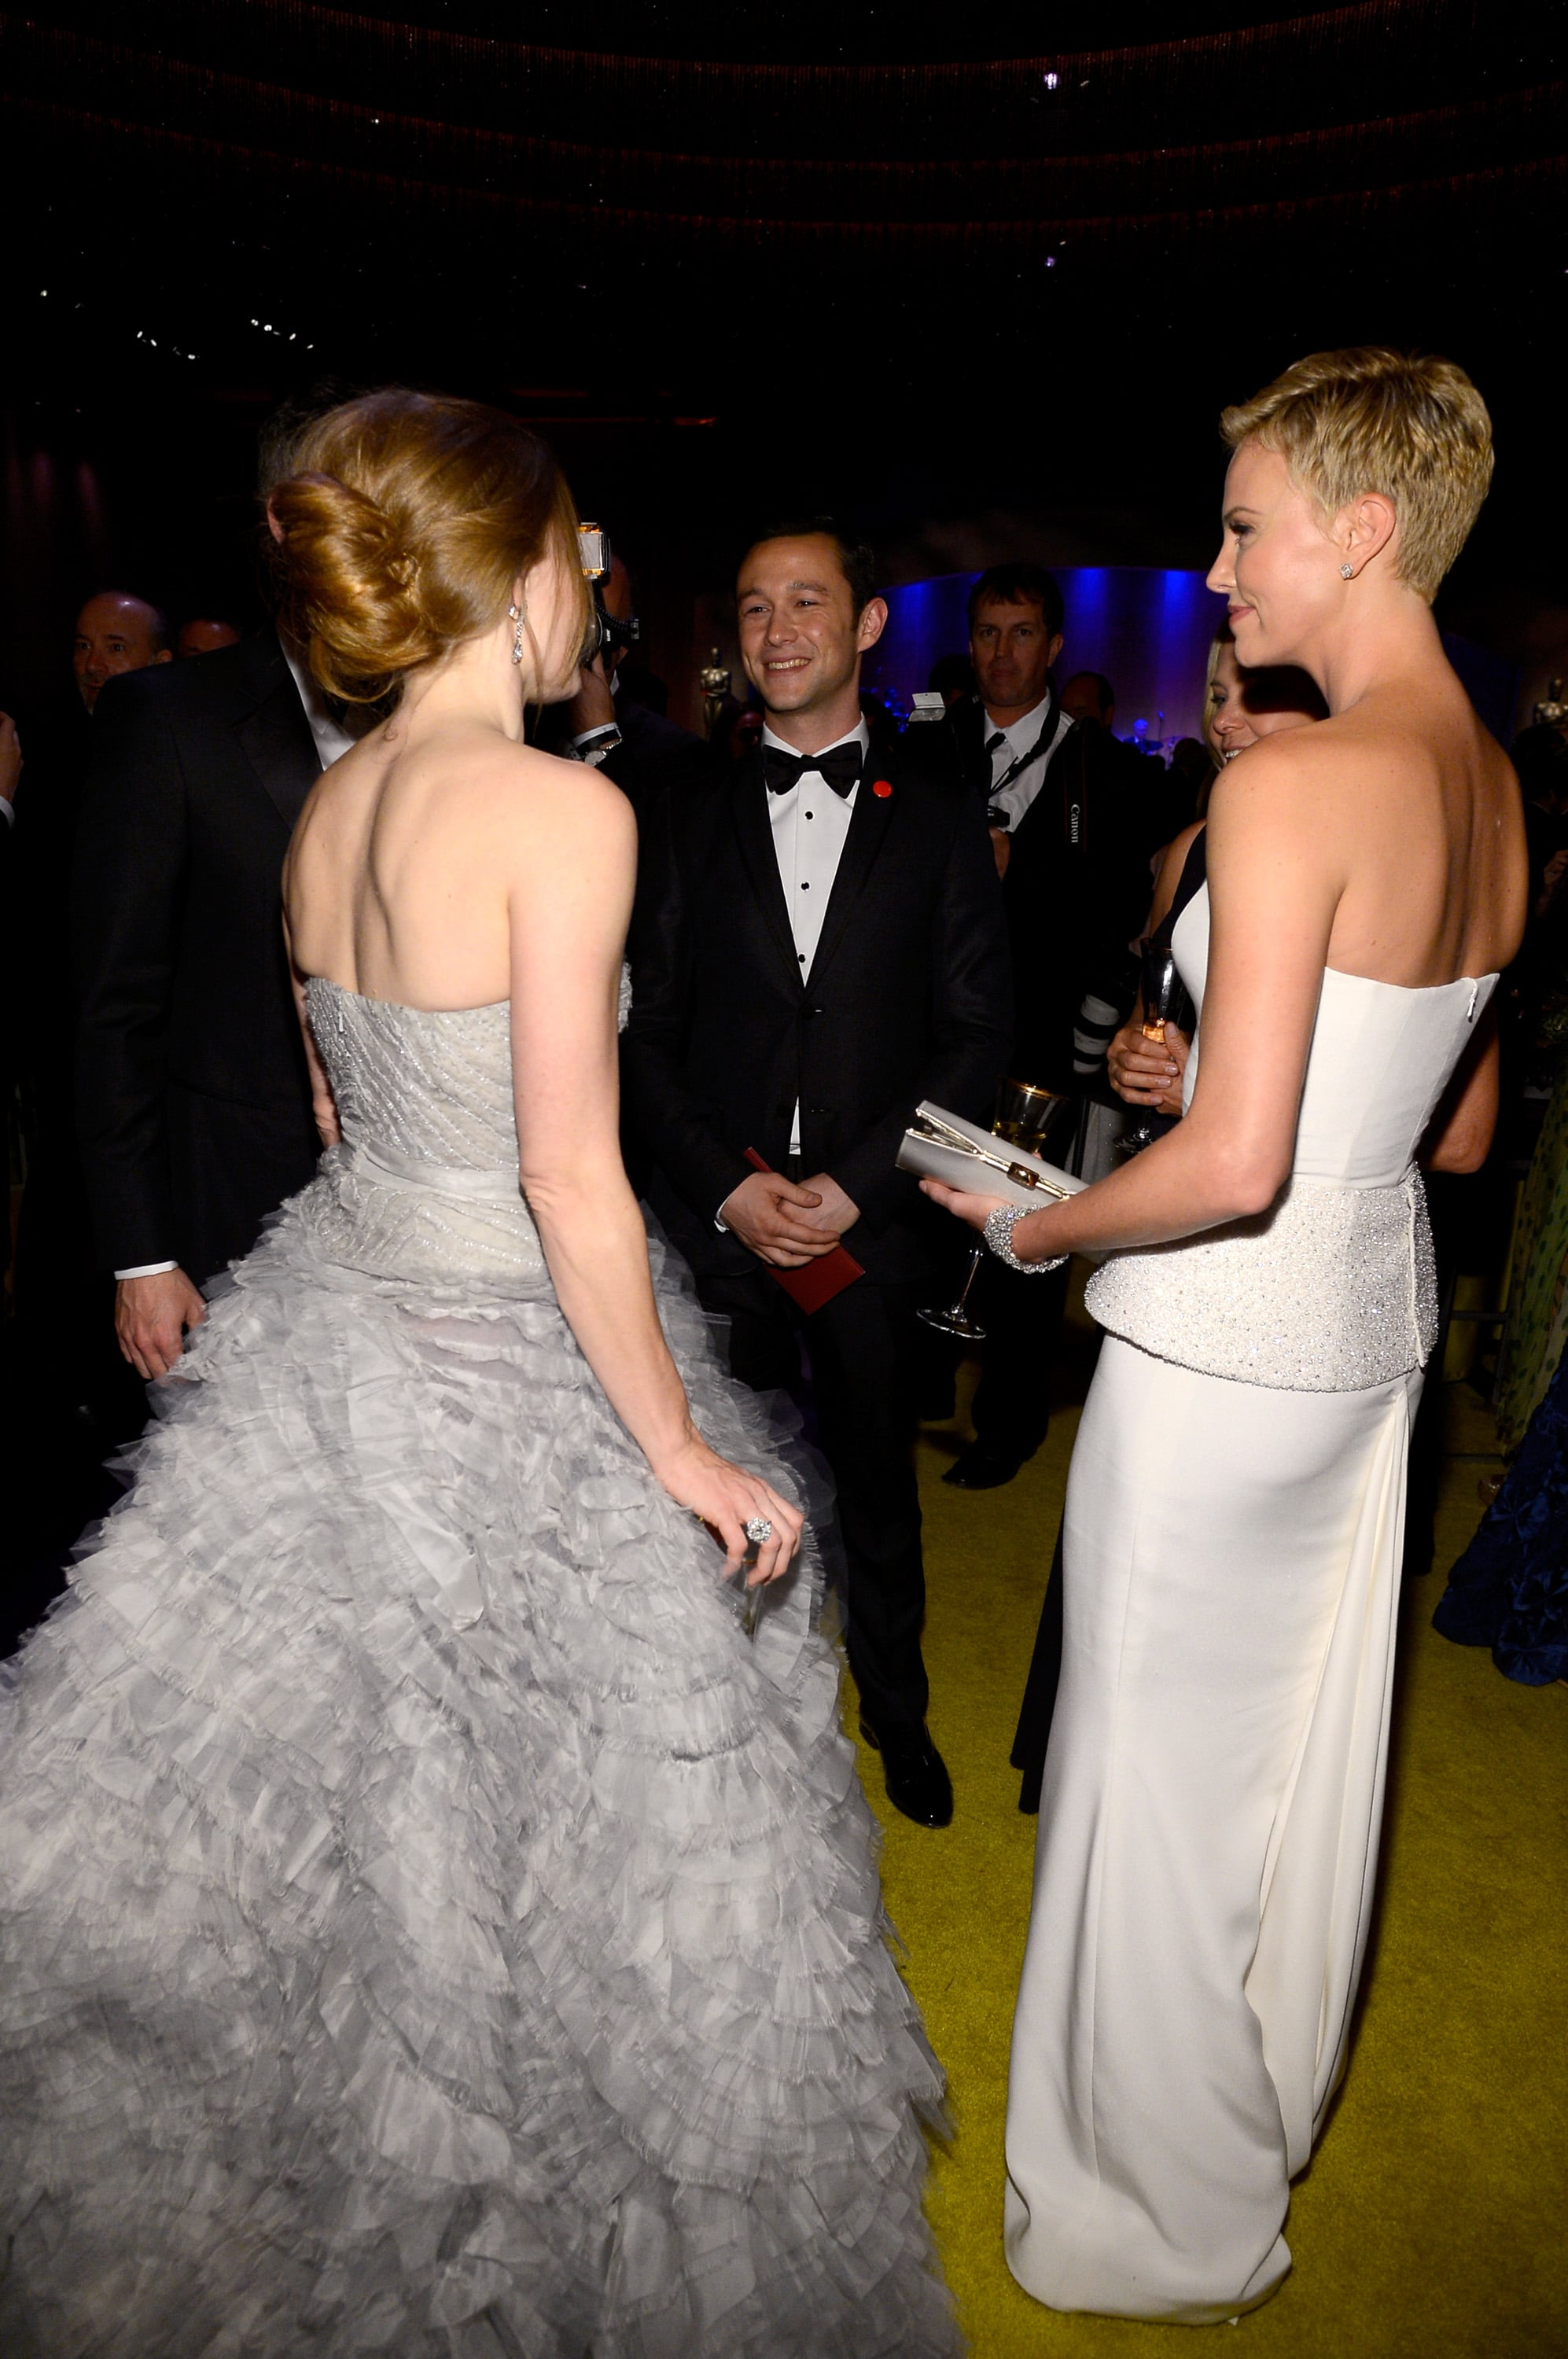 Charlize Theron and Amy Adams talked to Joseph Gordon-Levitt at the Governors Ball.